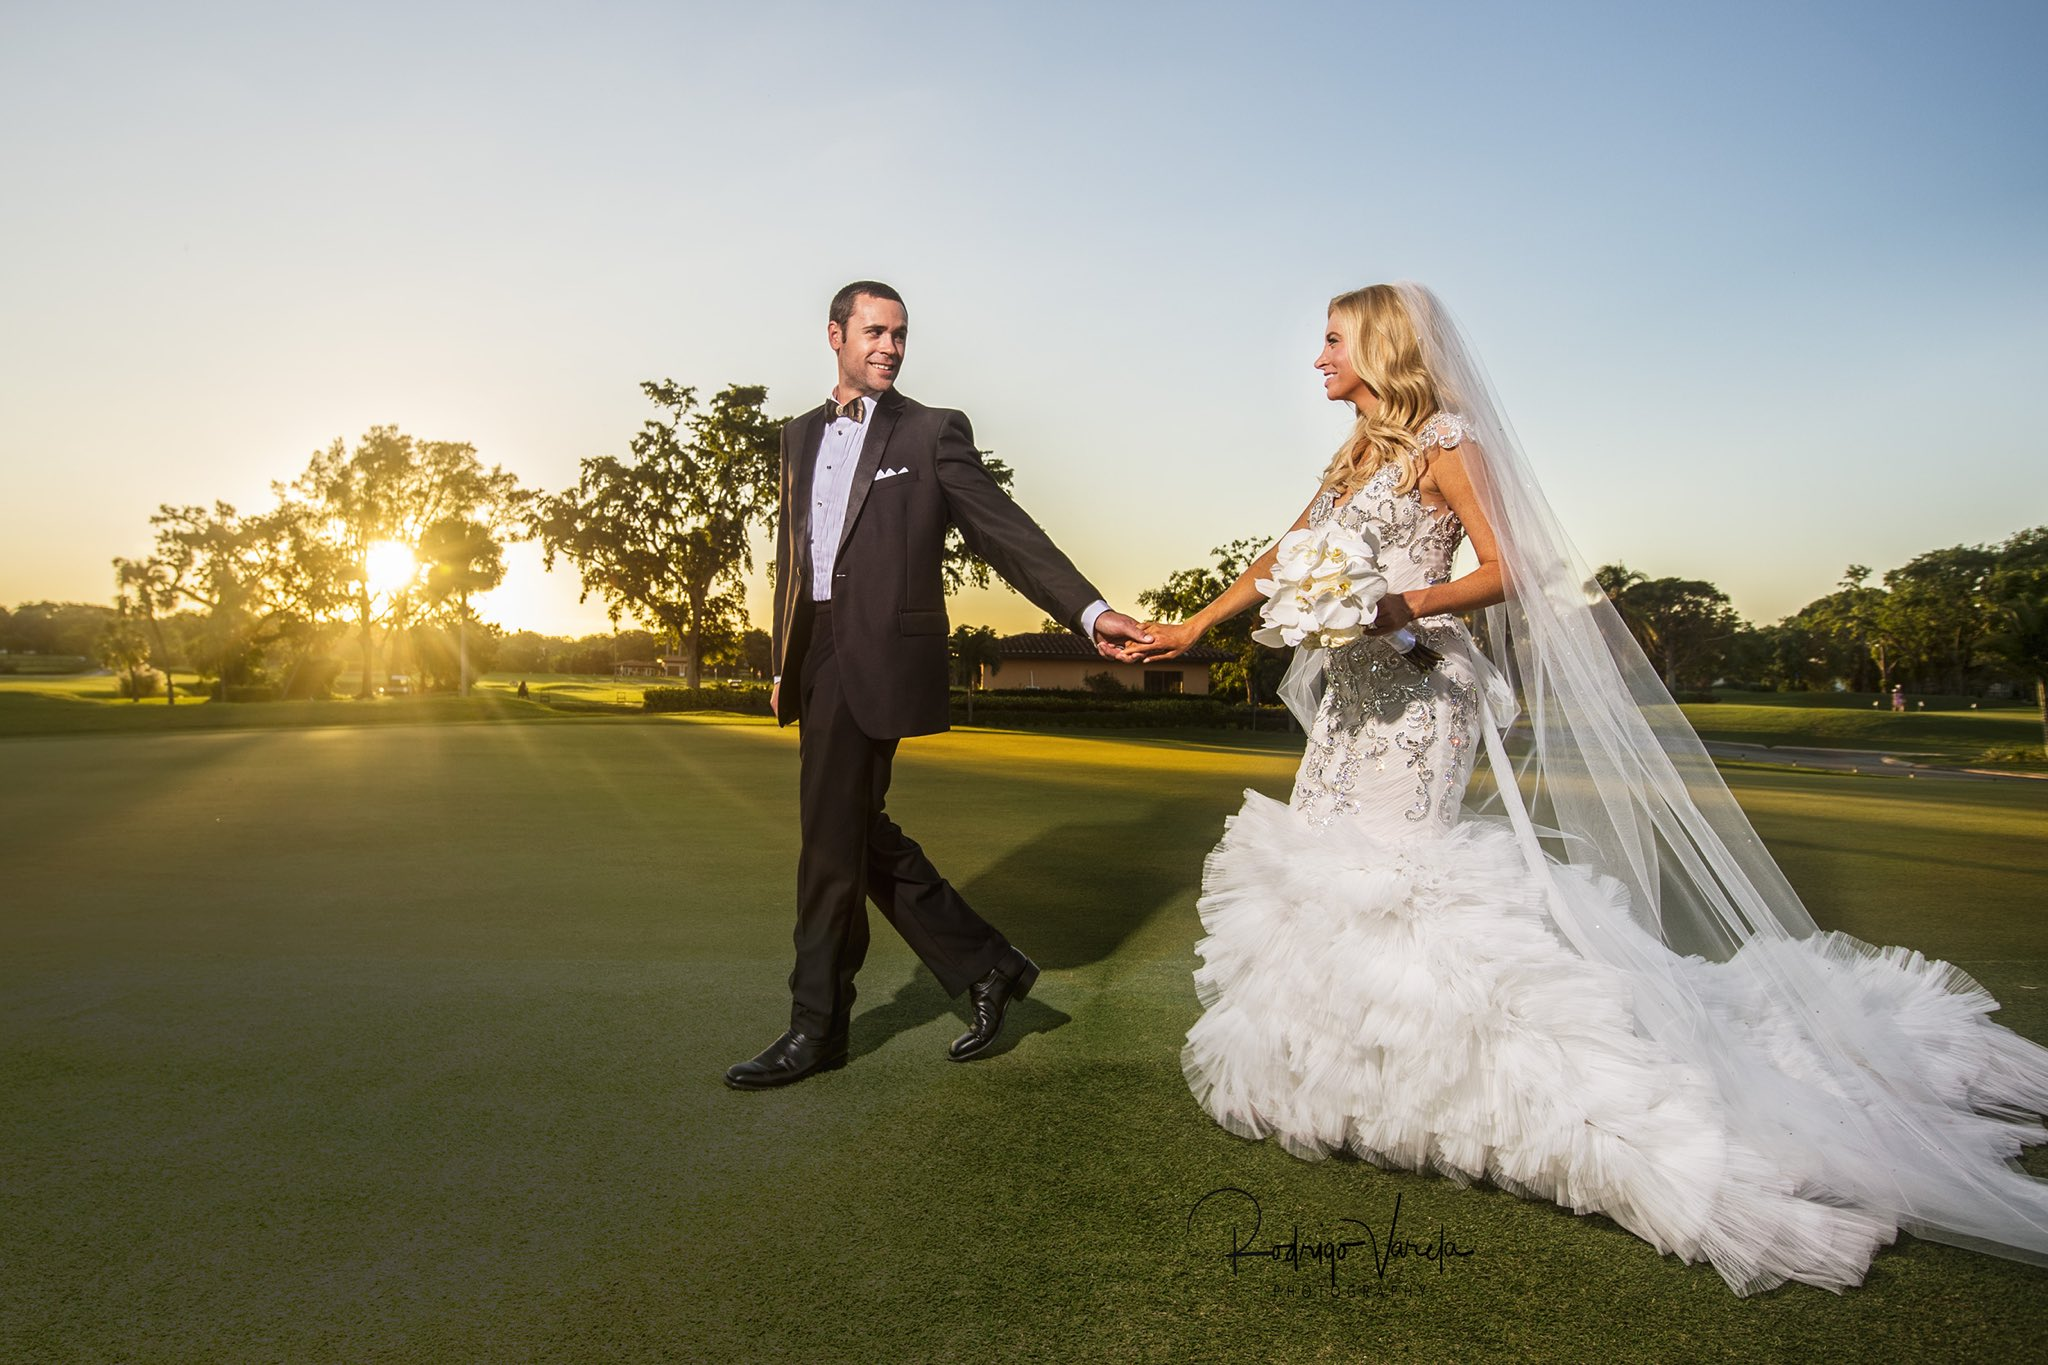 Kayleigh Mcenany On Twitter Quot Married The Love Of My Life